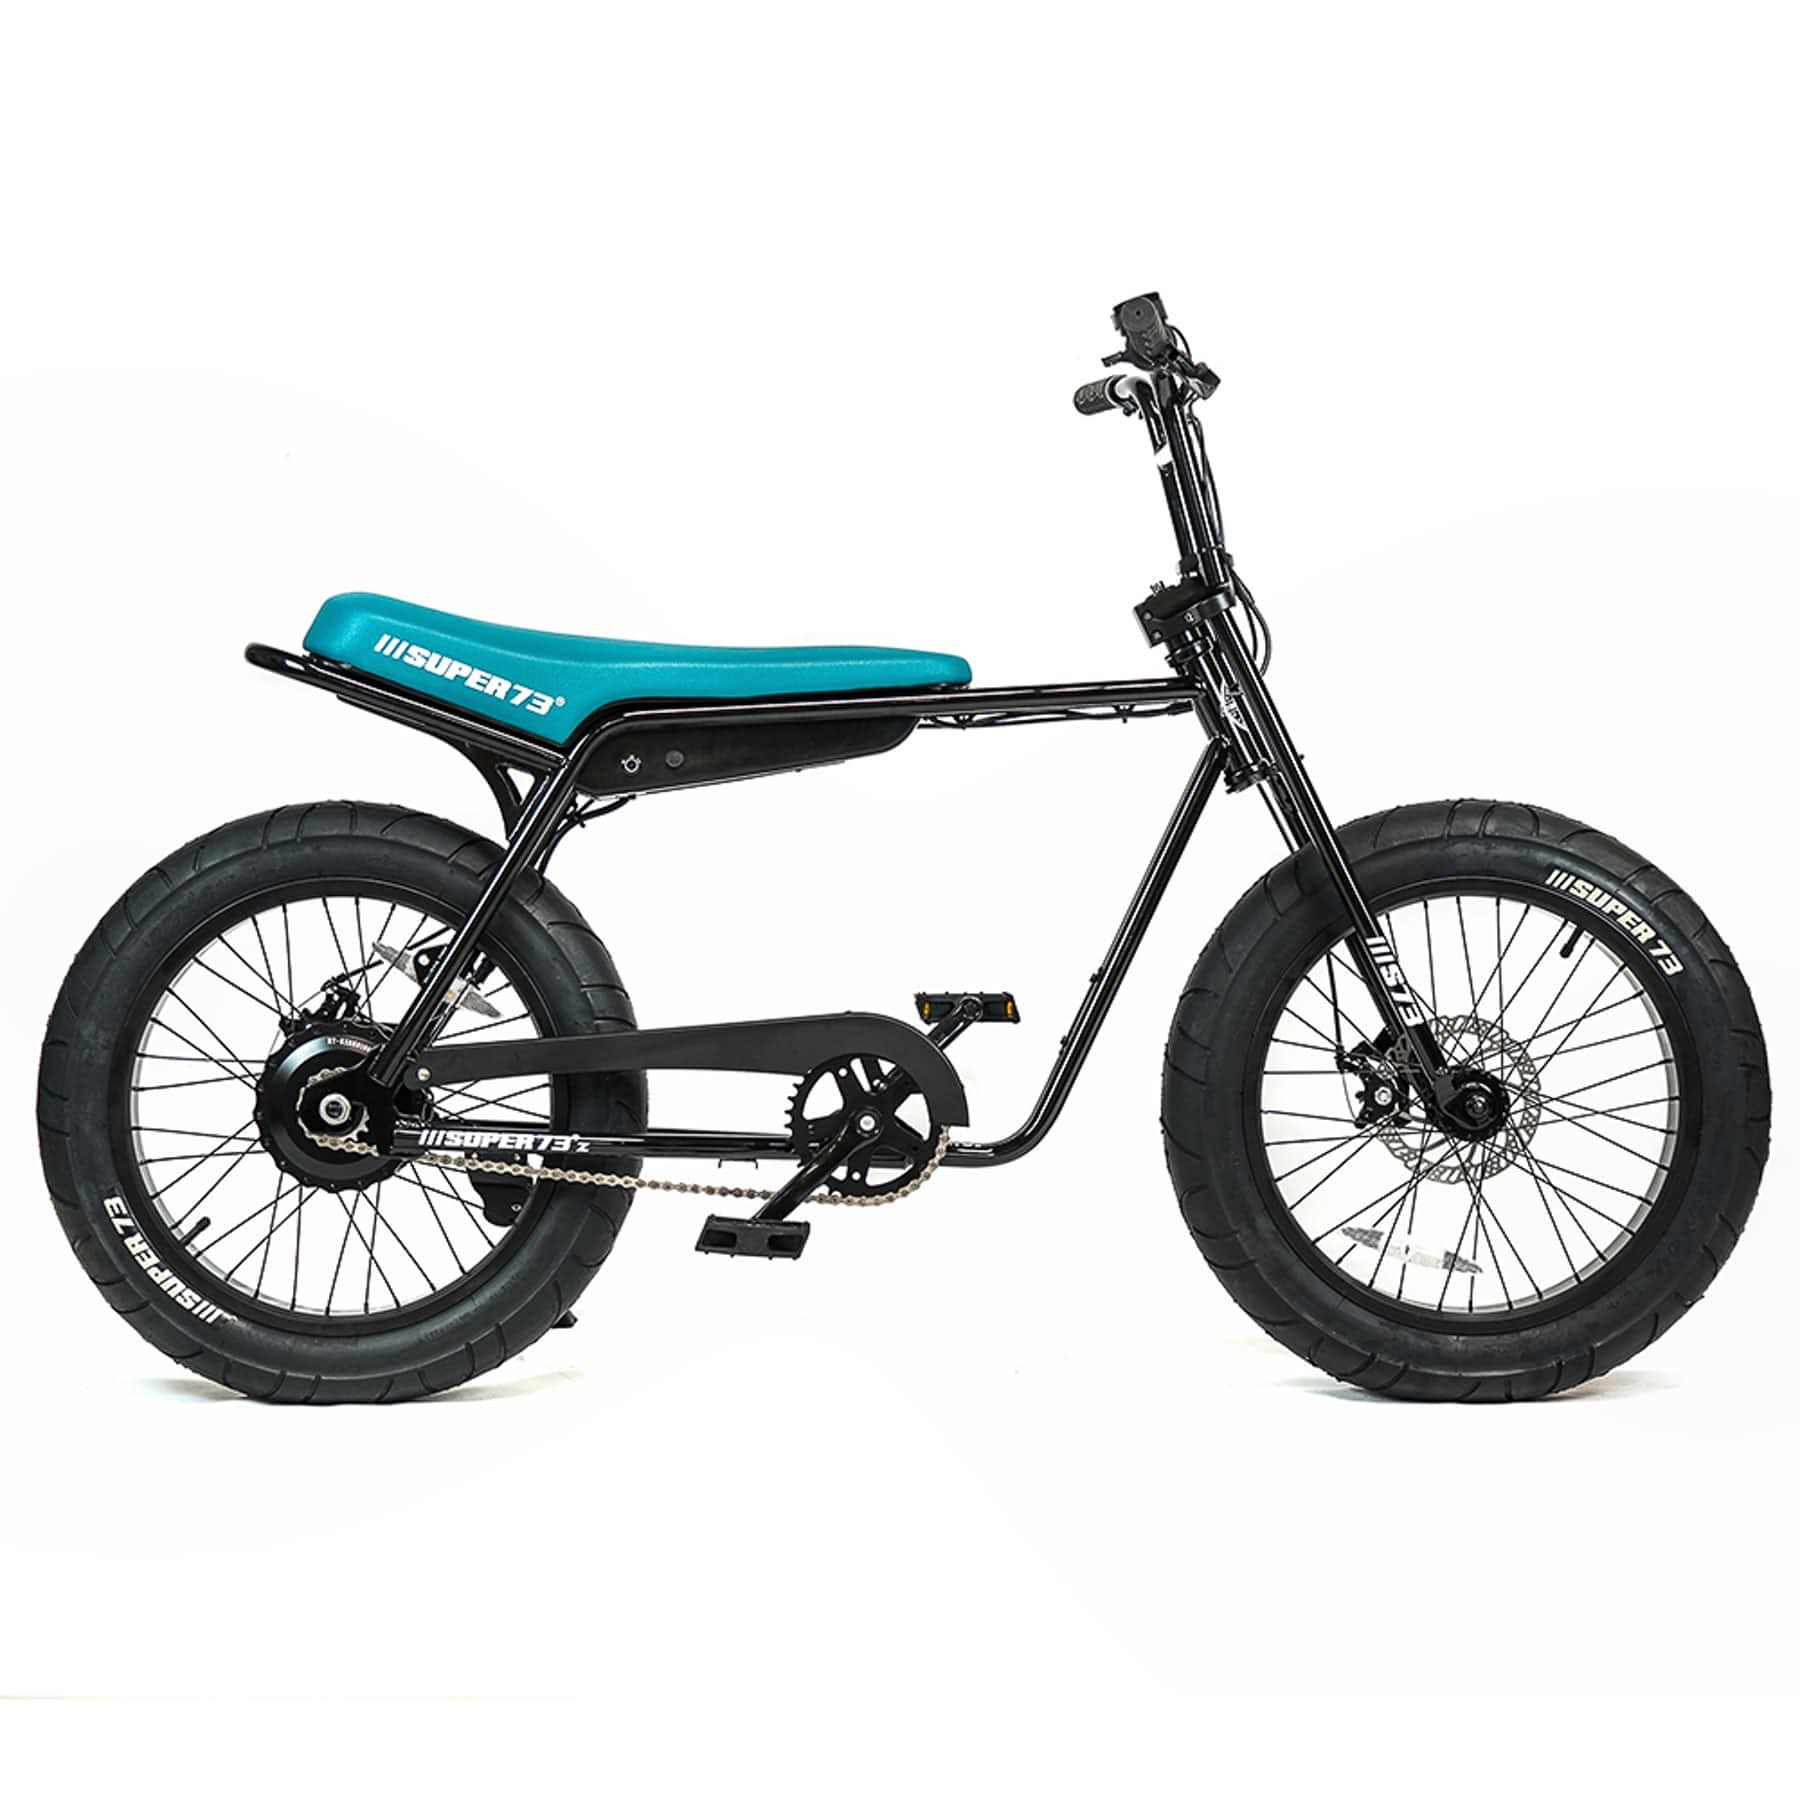 Super73 Z1 Lightweight E Bike Custom Bikes Electric Motorbike Ebike